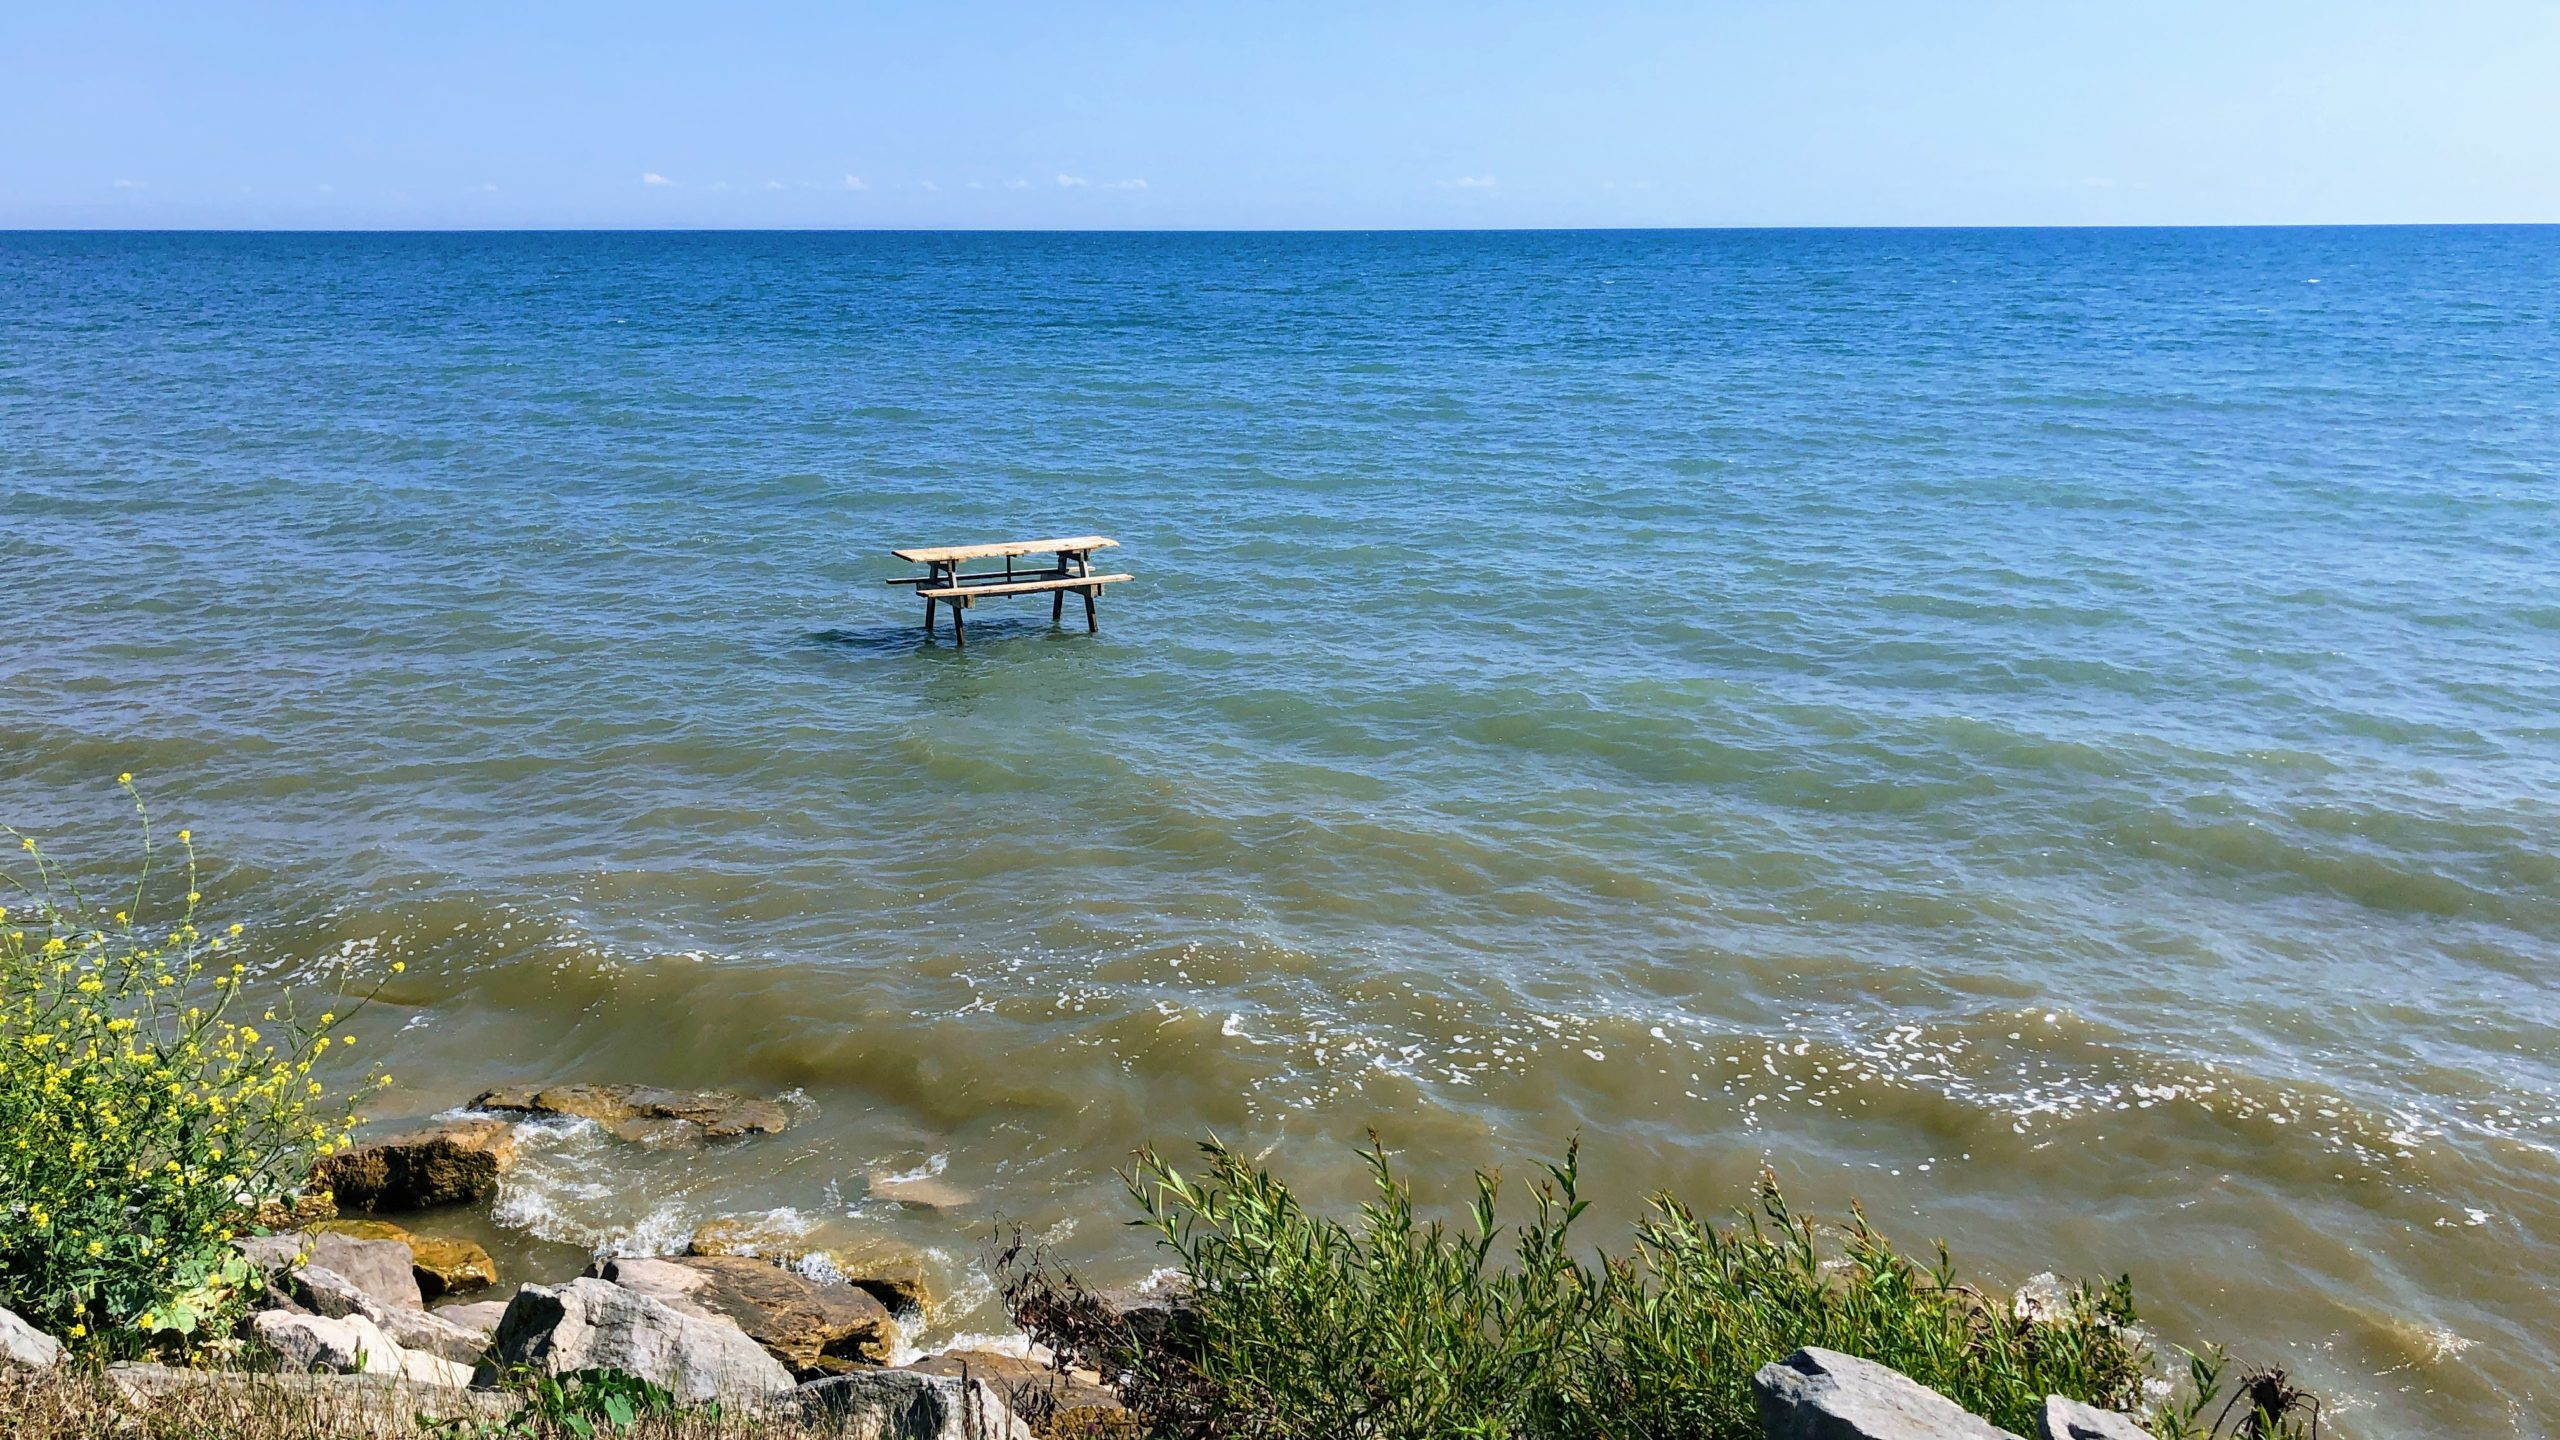 Picnic table in the water near Selkirk Provincial Park, along the Cannonball 300 bikepacking route.